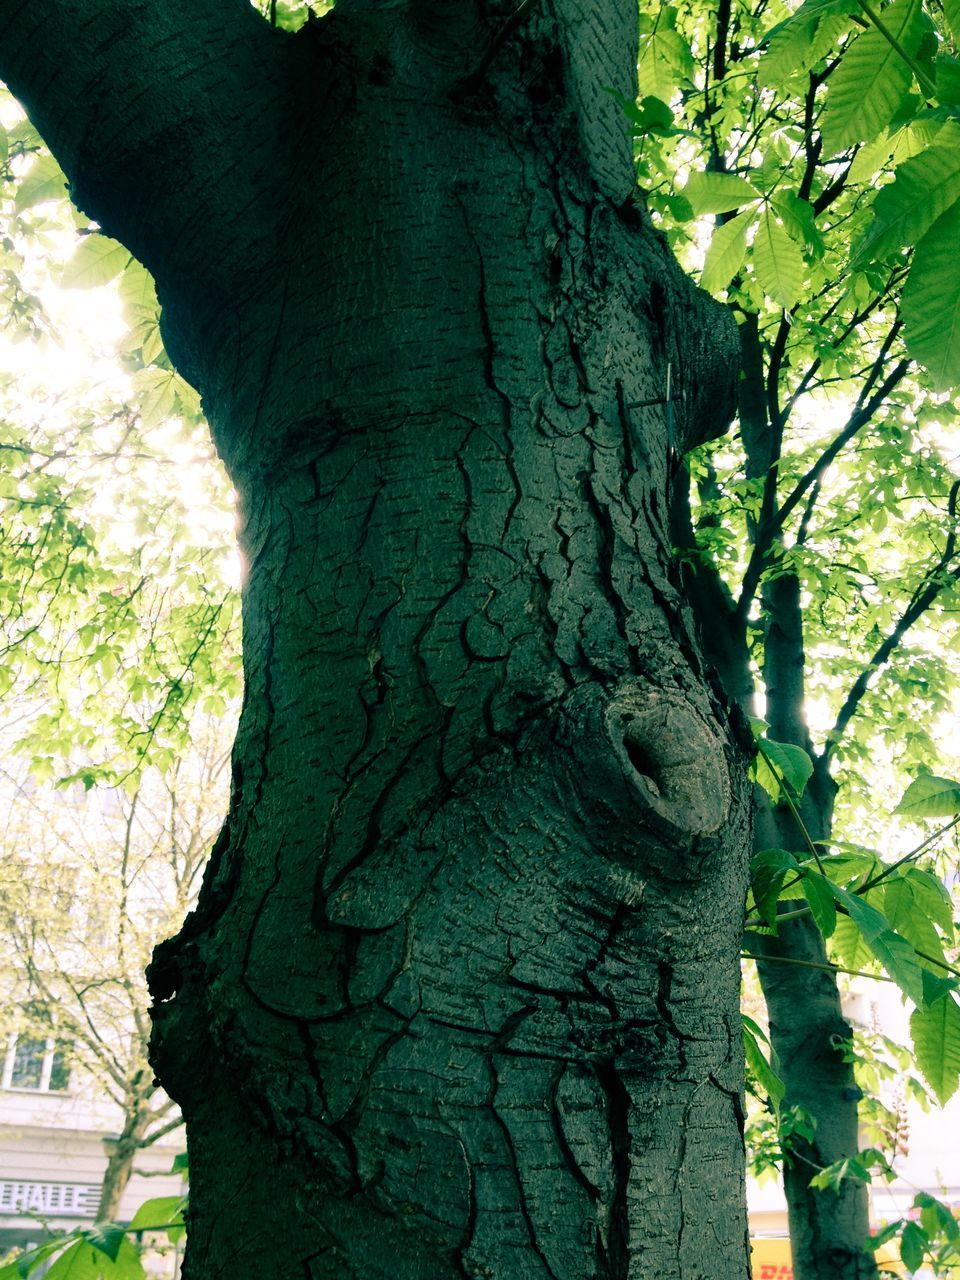 tree trunk, tree, nature, day, growth, outdoors, branch, no people, forest, bark, close-up, beauty in nature